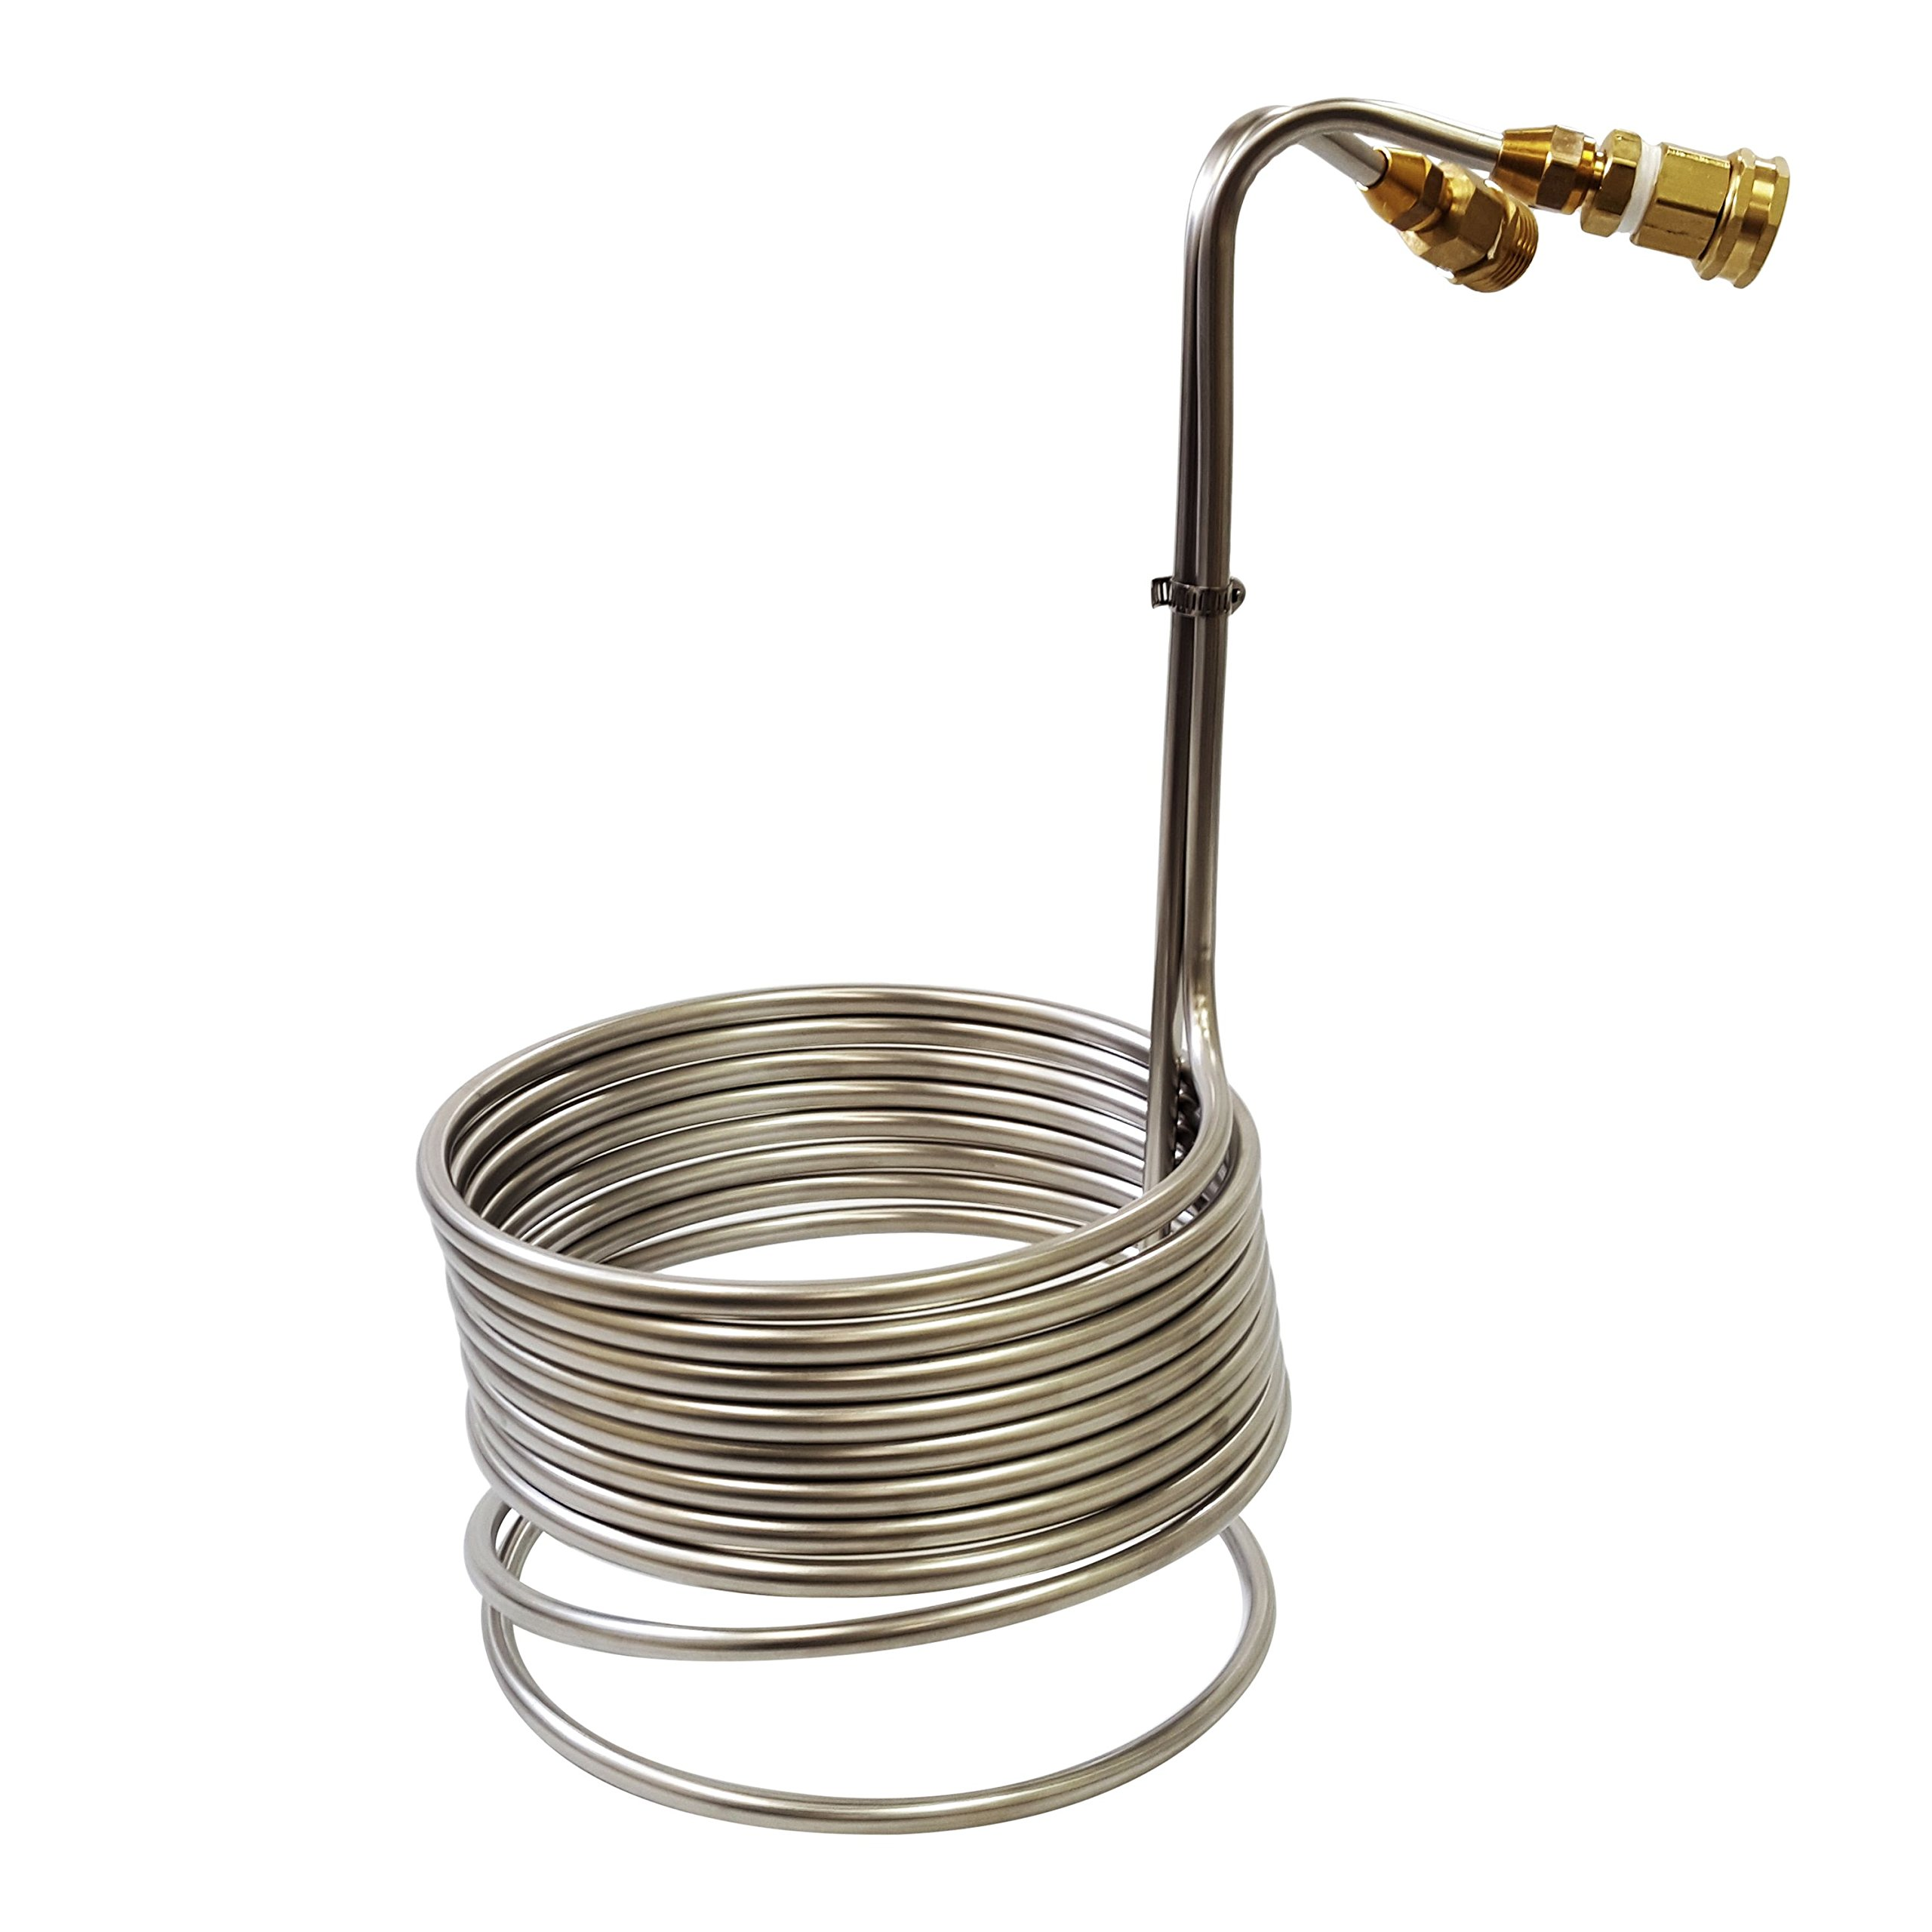 NY Brew Supply Super Efficient Stainless Steel Wort Chiller with Brass GH Fittings, 3/8'' x 2.5', Silver